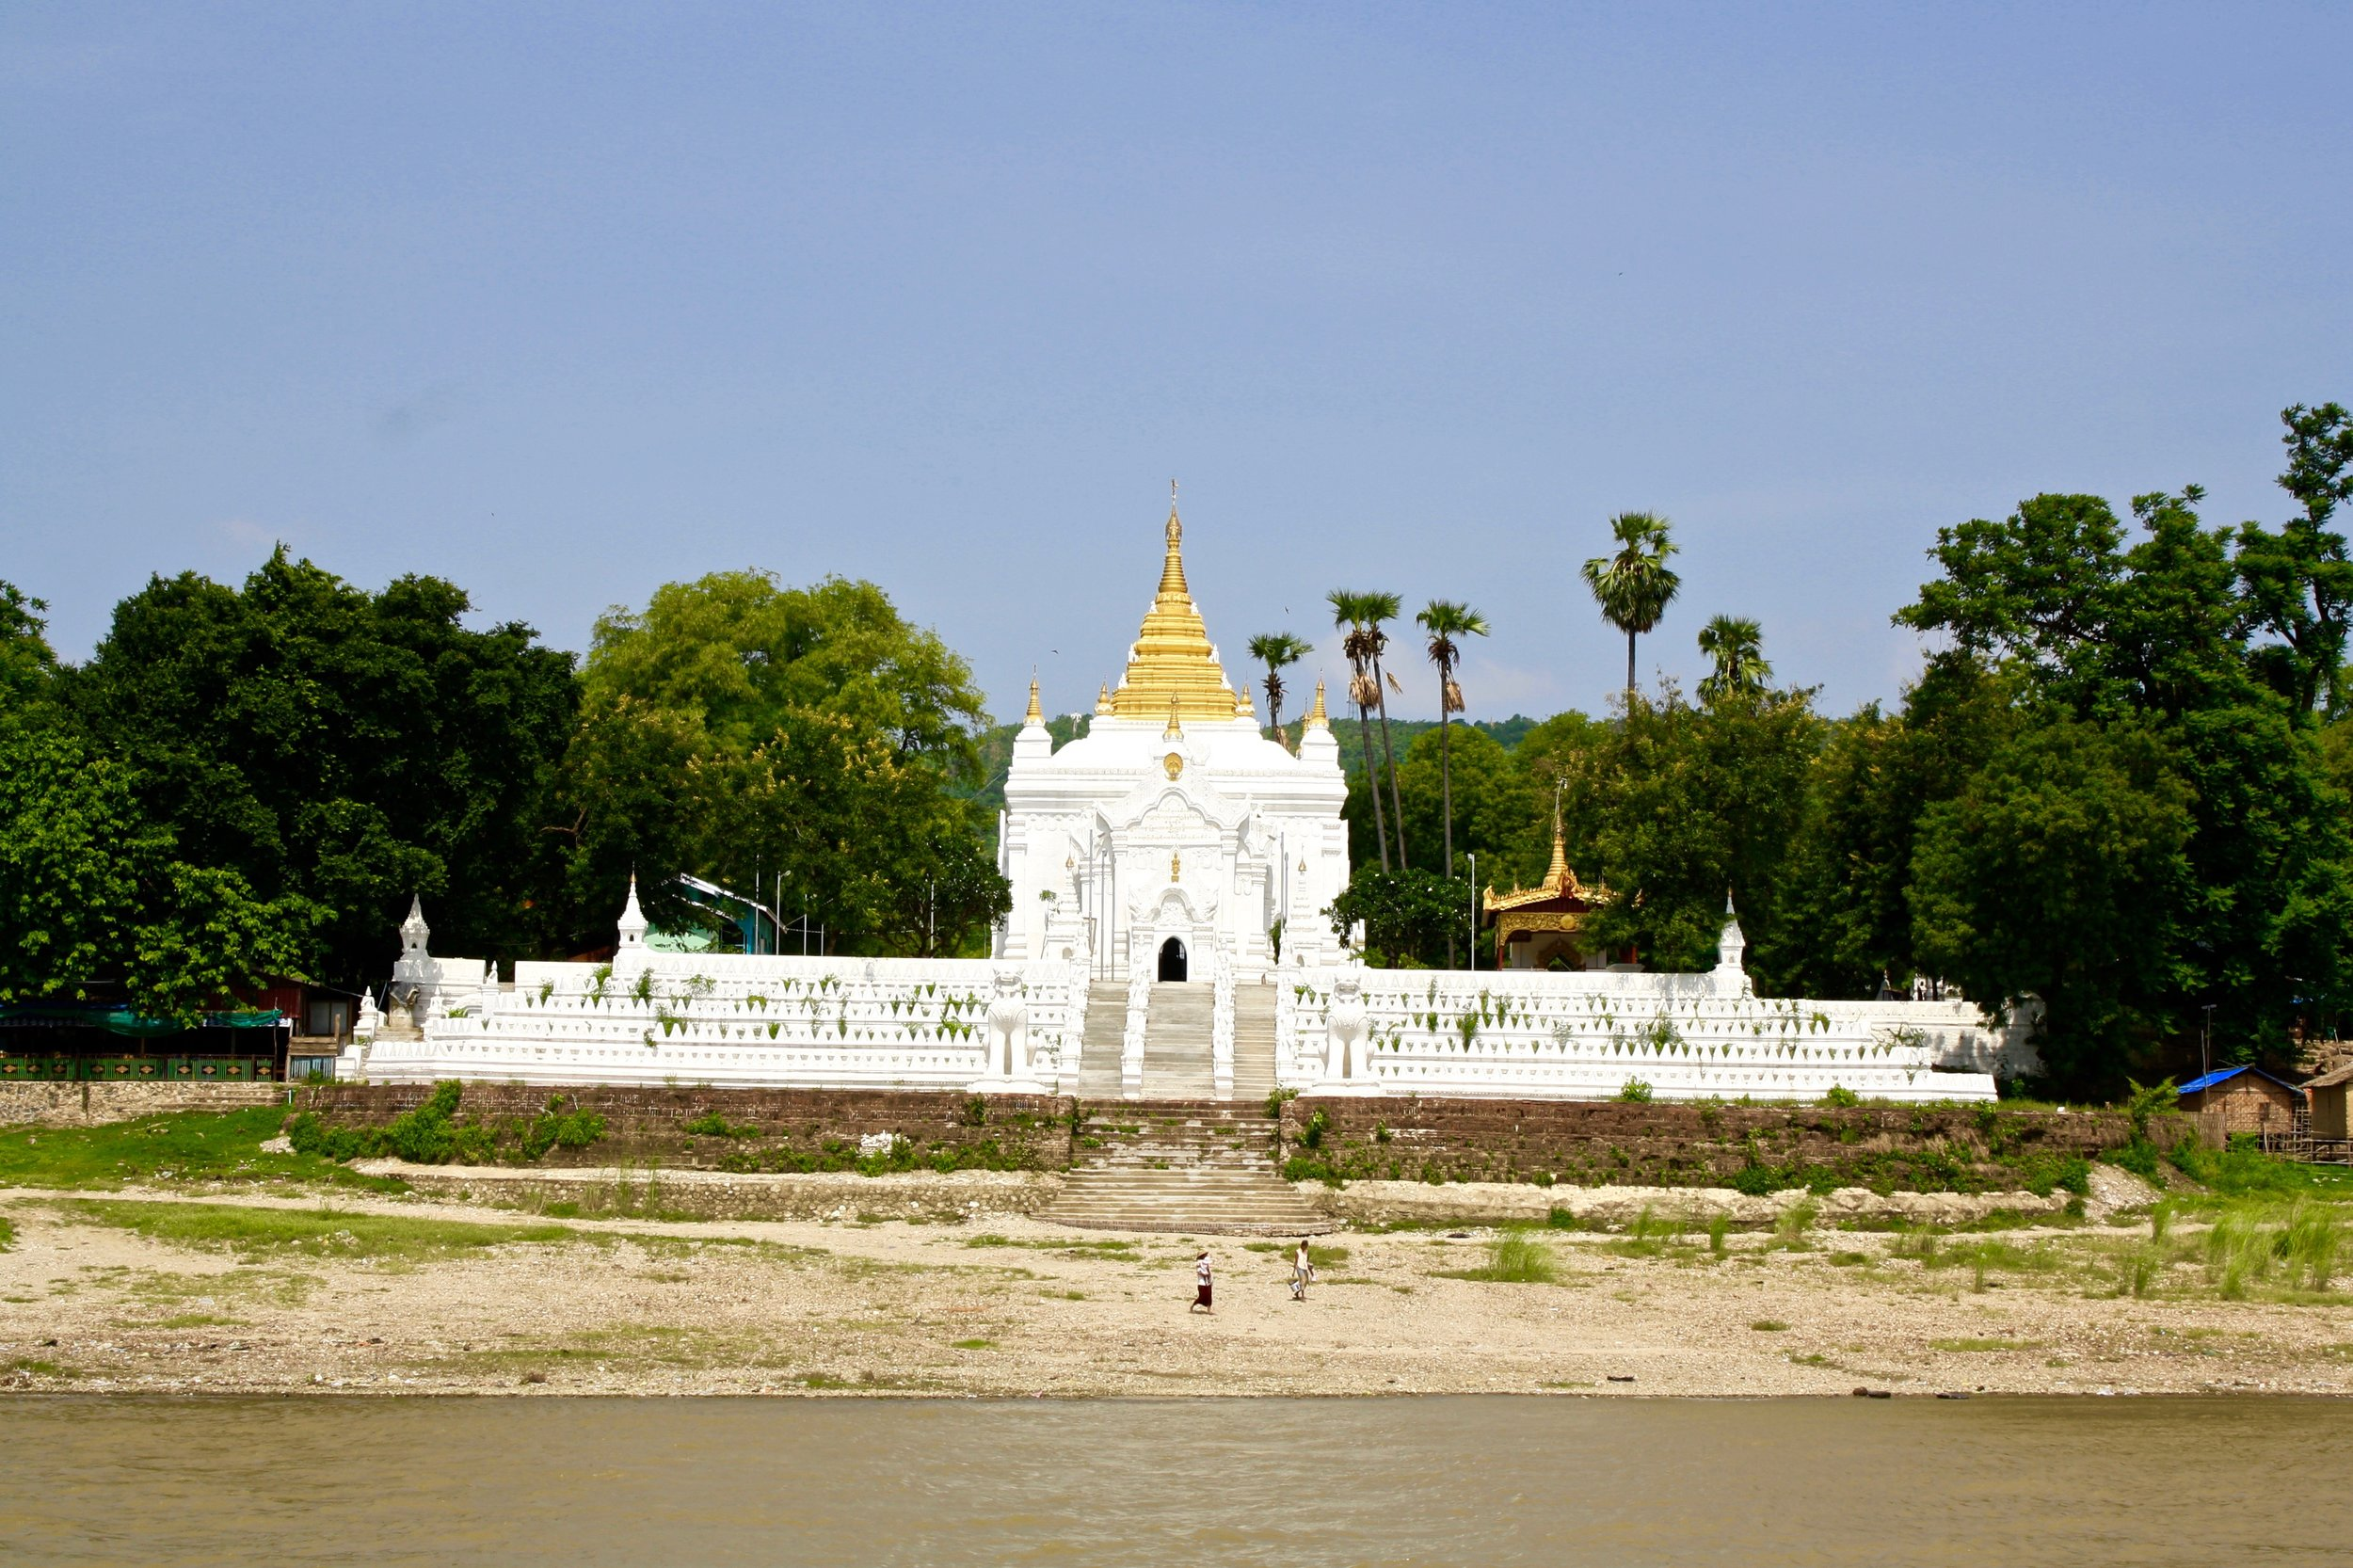 Mingun is best known for its gigantic, unfinished stupa, the Mingun Pahtodawgyi, which was meant to be the largest in the world (at a projected height of 150 metres), but now lies ravaged by earthquakes on the western banks of the Irrawaddy.